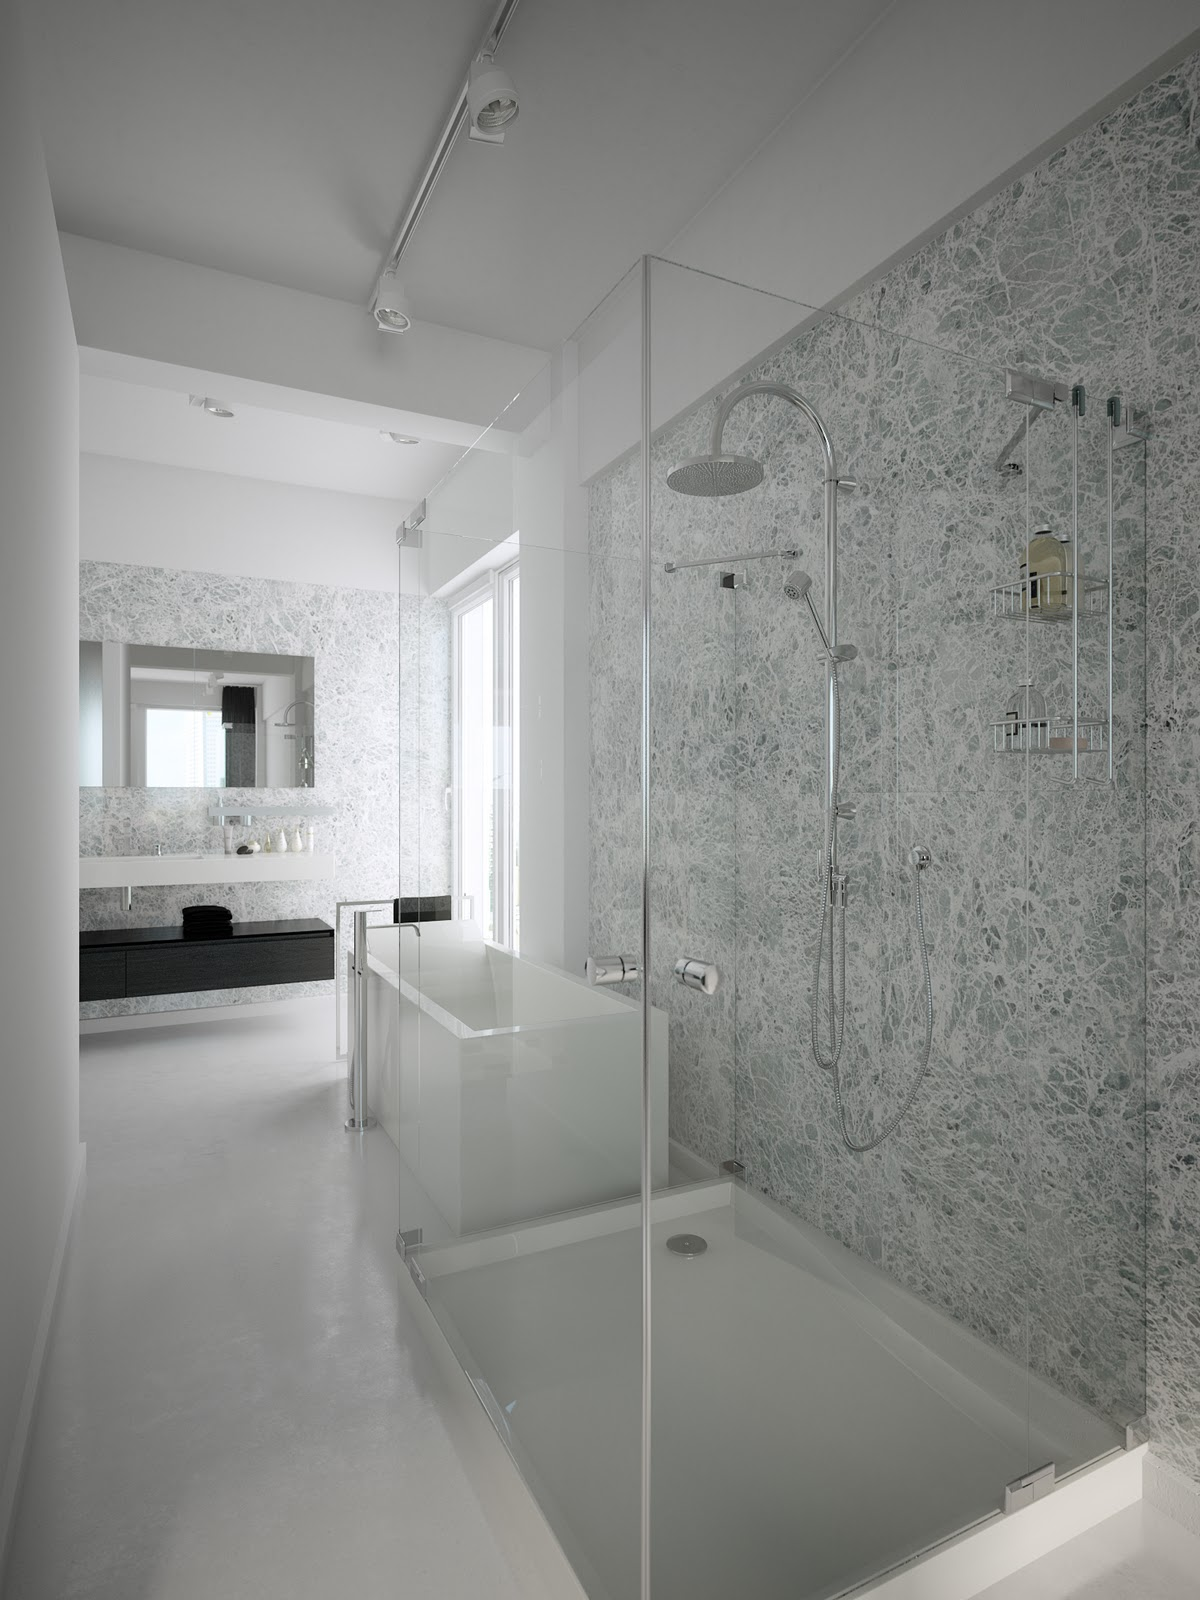 Black white shower room interior design ideas Interior design black bathroom